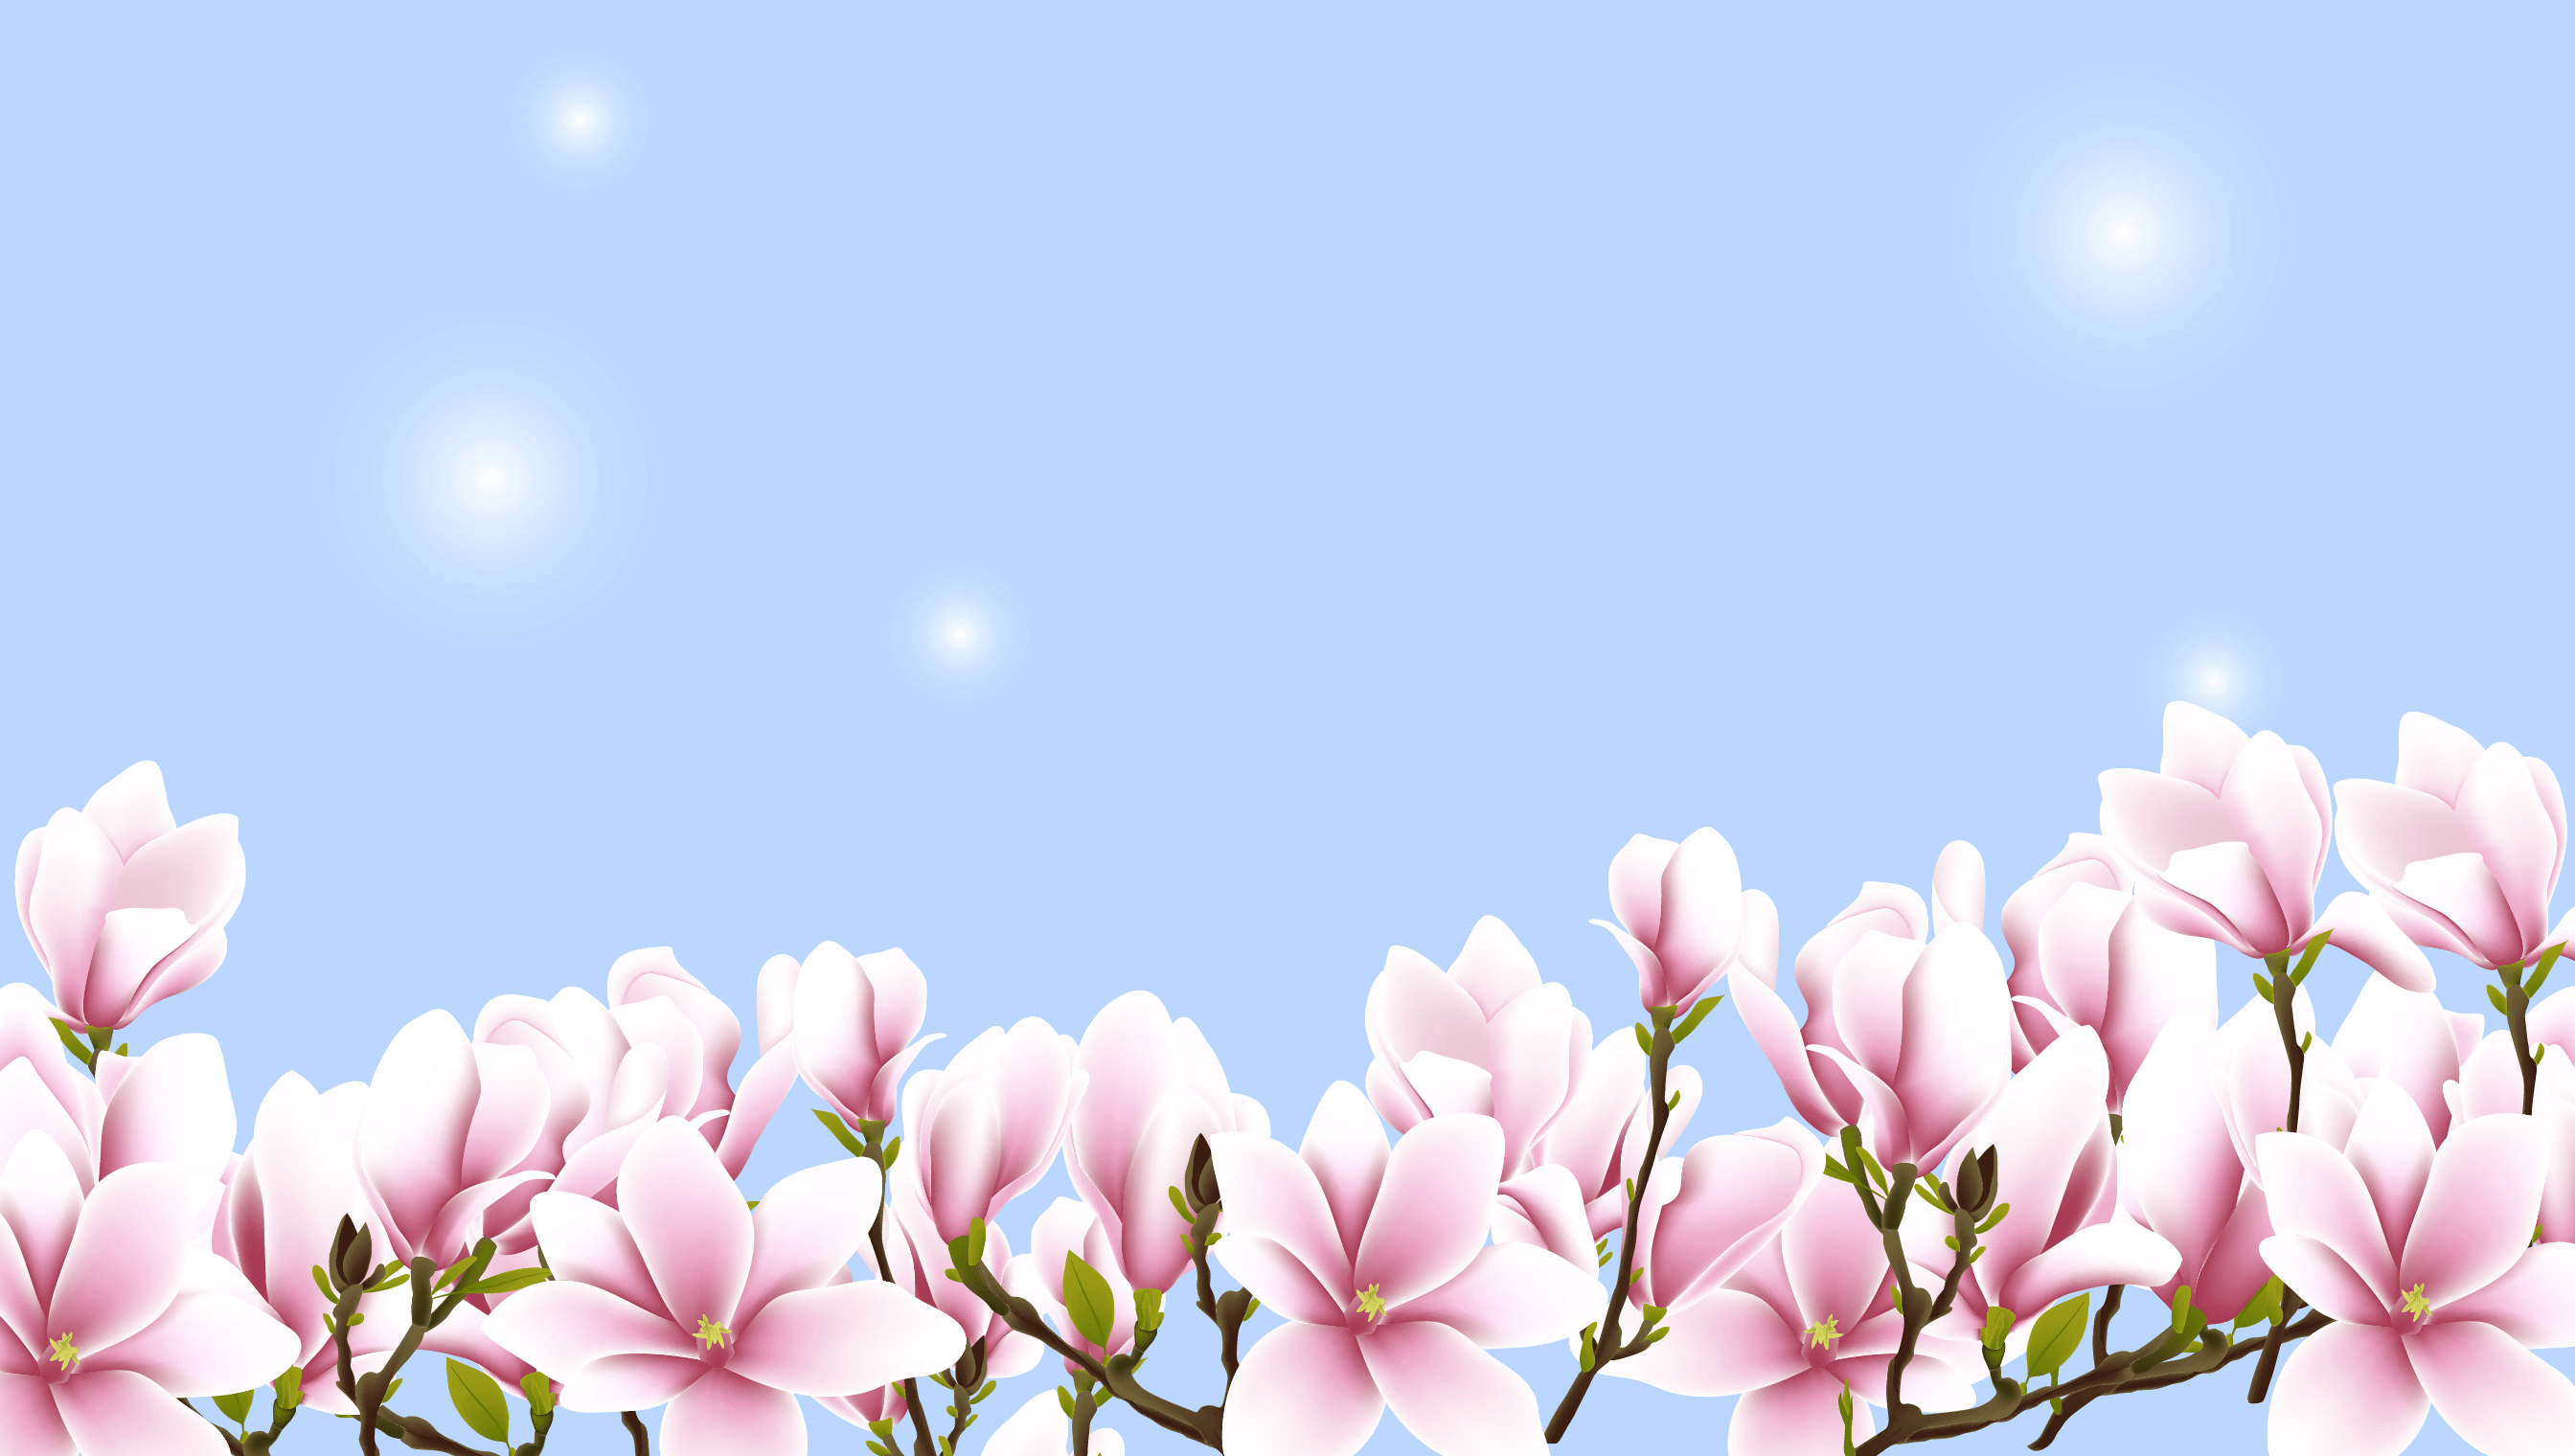 background scene - Mother's Day Background 1